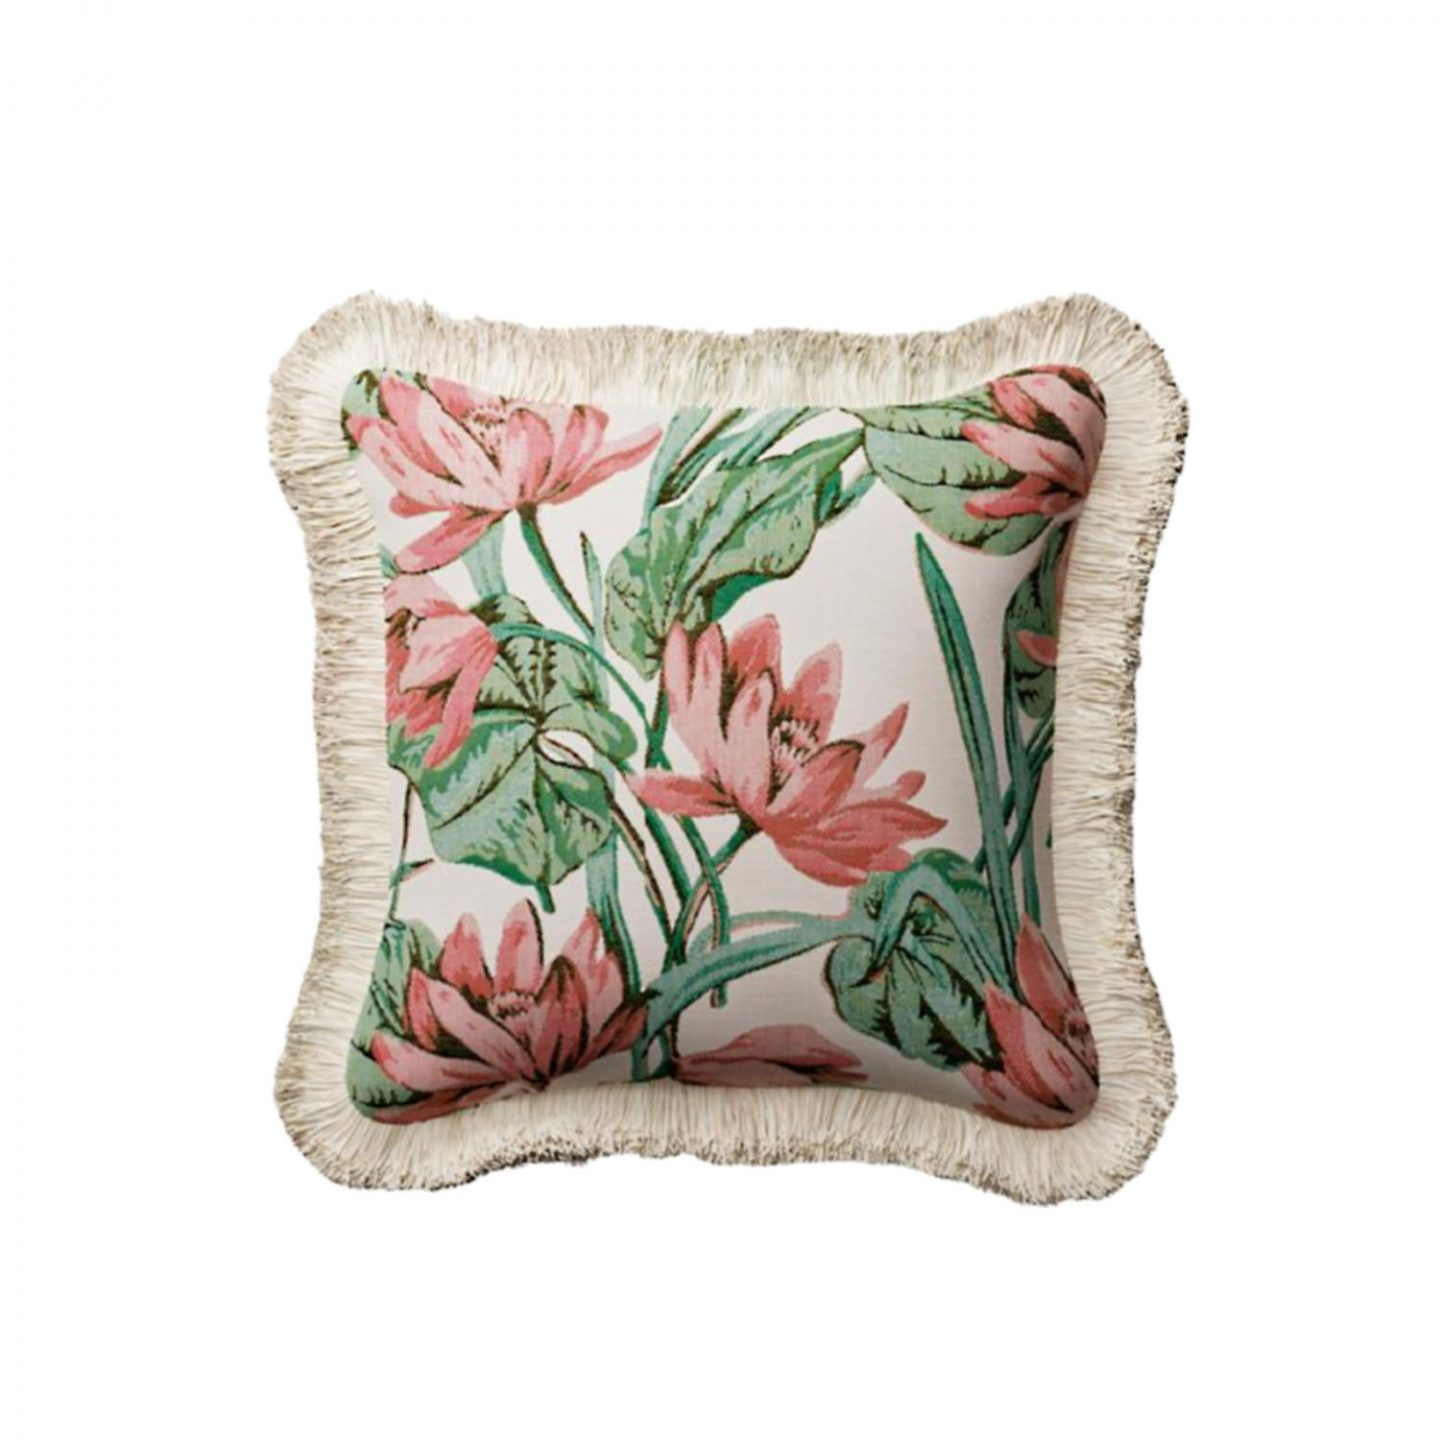 Frontgate pillow | Monday Morning Musings | No.165